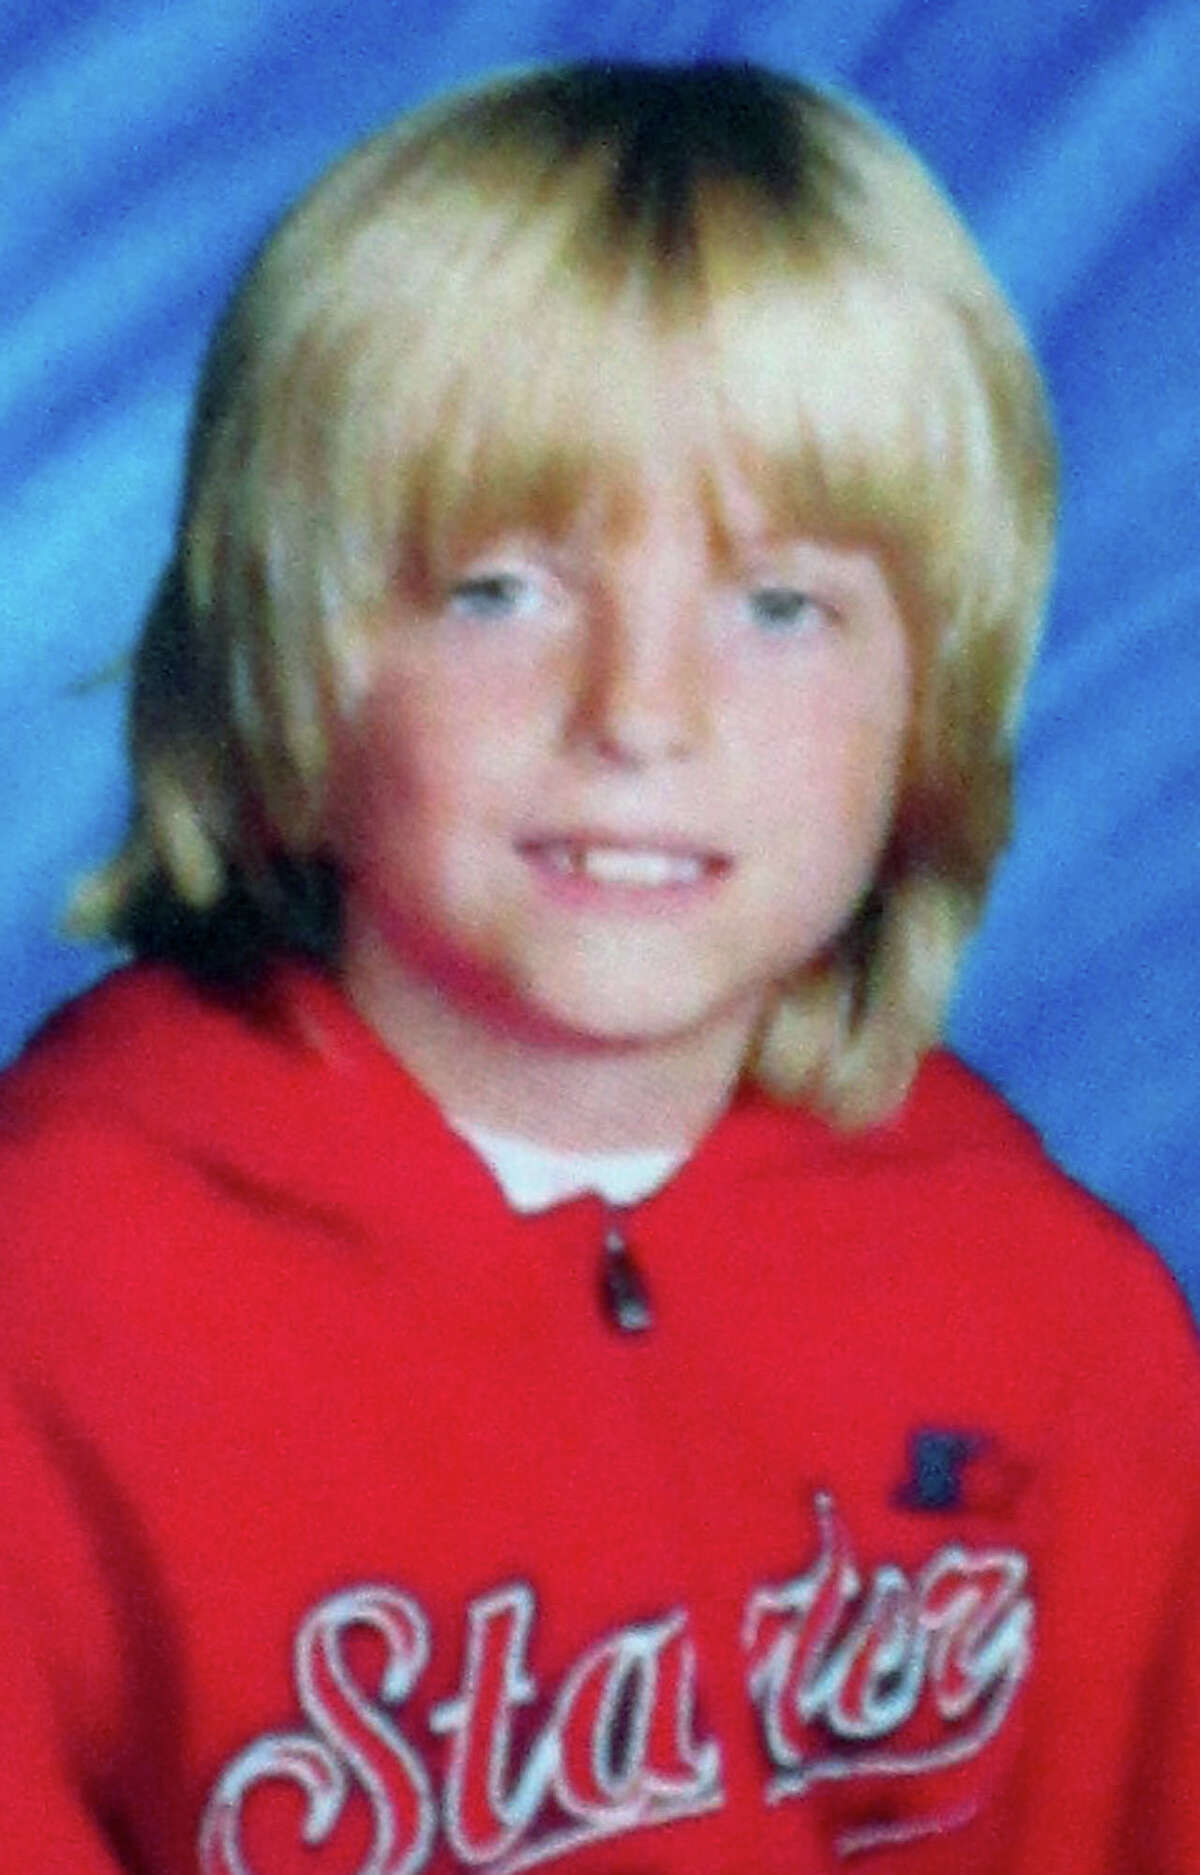 Nicholas Fratino, a fourth-grade student at Sarah Noble Intermediate School in New Milford.